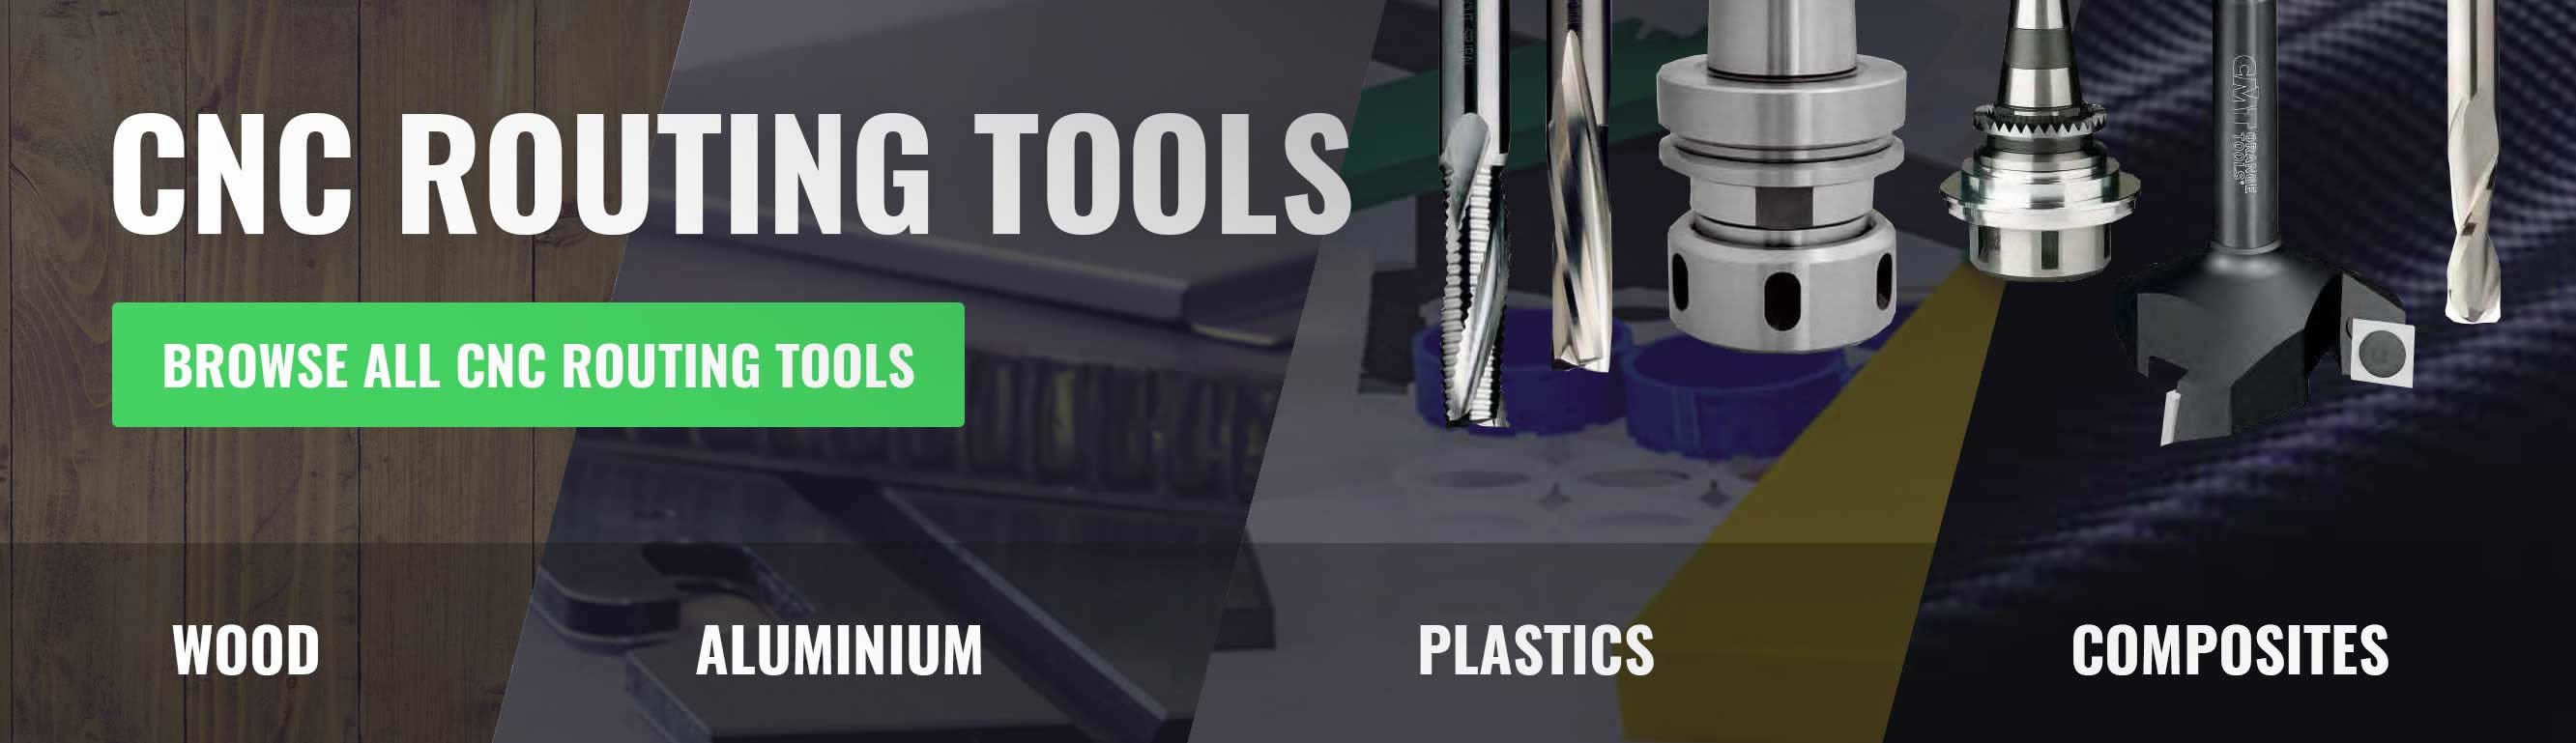 CNC Router Tools